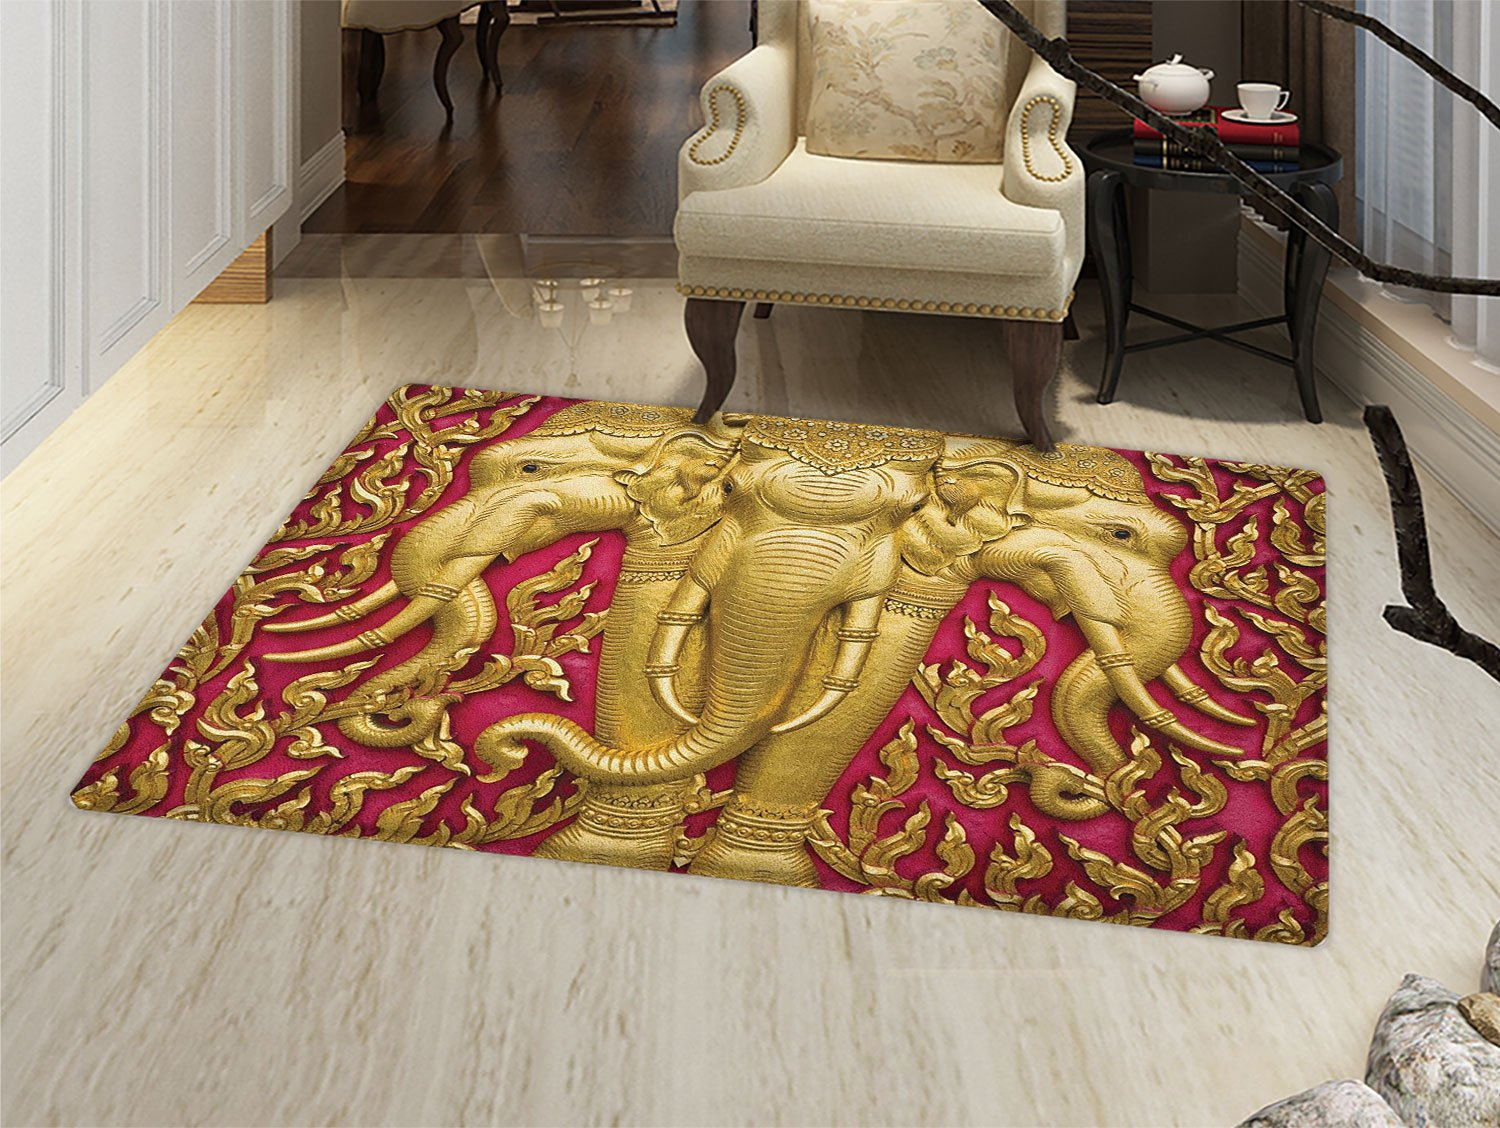 smallbeefly Elephant Door Mat indoors Elephant Carved Gold Paint on Door Thai Temple Spirituality Statue Classic Customize Bath Mat with Non Slip Backing Fuchsia Mustard